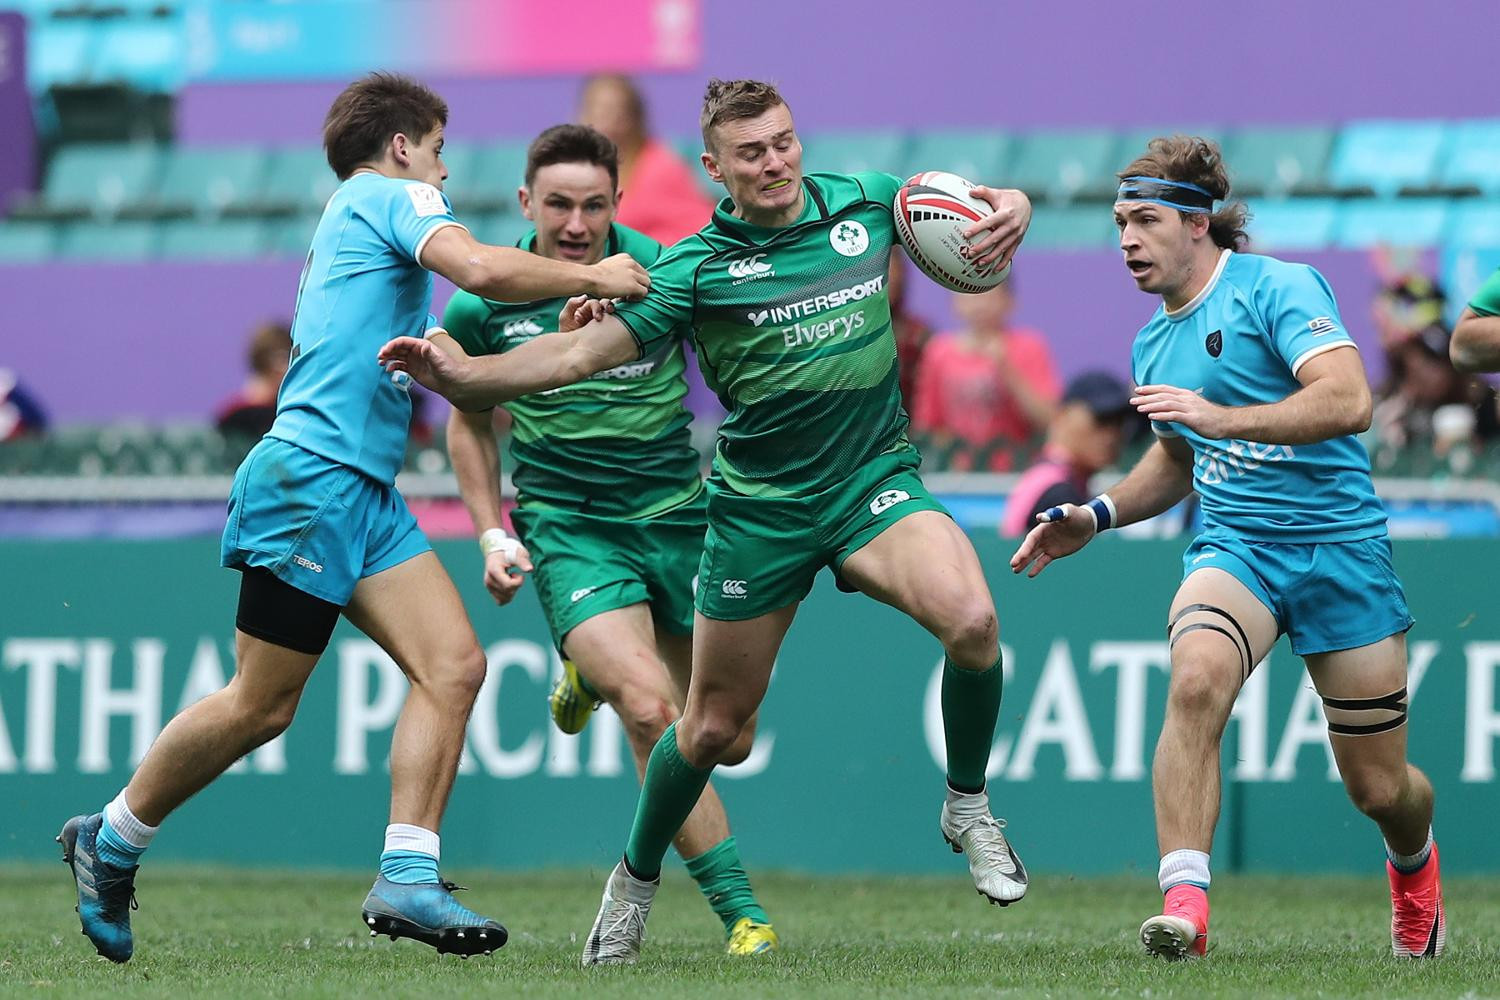 Ireland two wins from World Sevens Series promotion as Fiji and South Africa set pace in Hong Kong